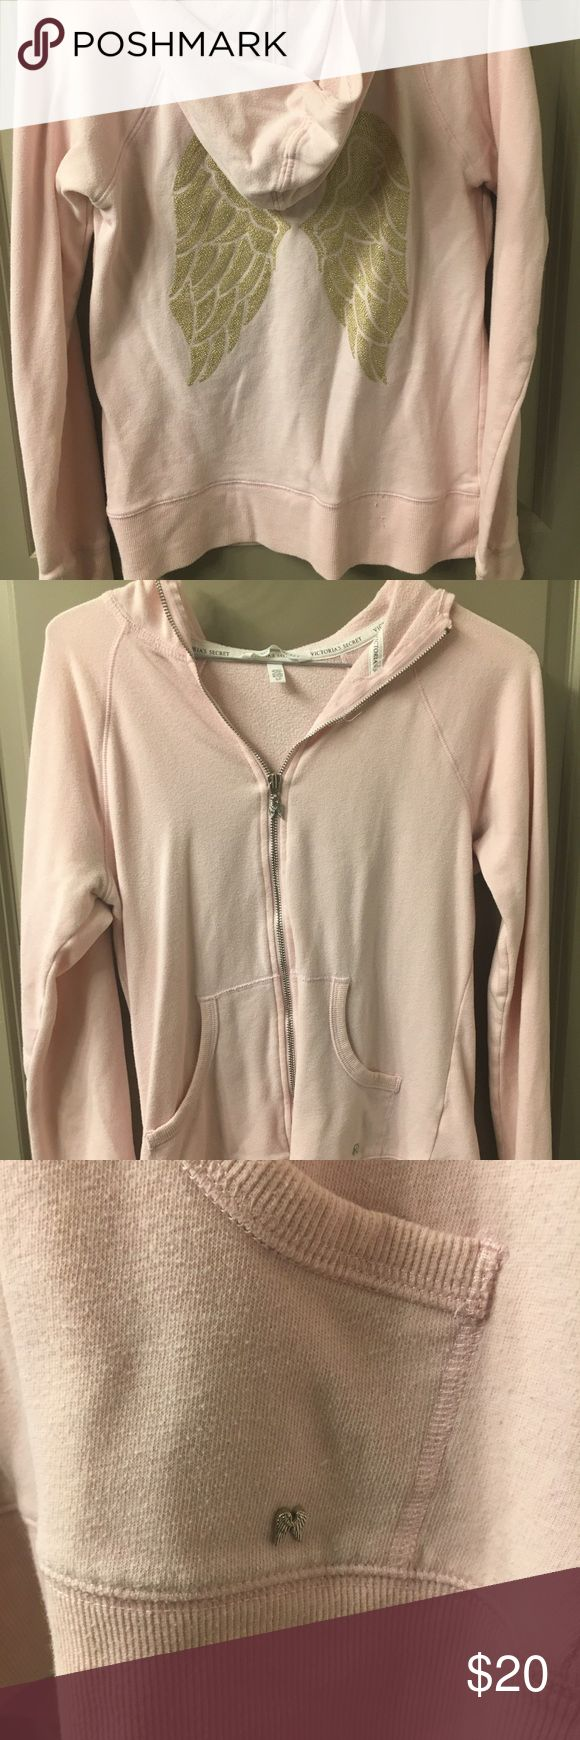 Victoria's Secret Gold Angel Wing Pink Zip Up No stains or tears. Pale Pink Zip up hooded sweatshirt with gold angel wings on the back Victoria's Secret Tops Sweatshirts & Hoodies